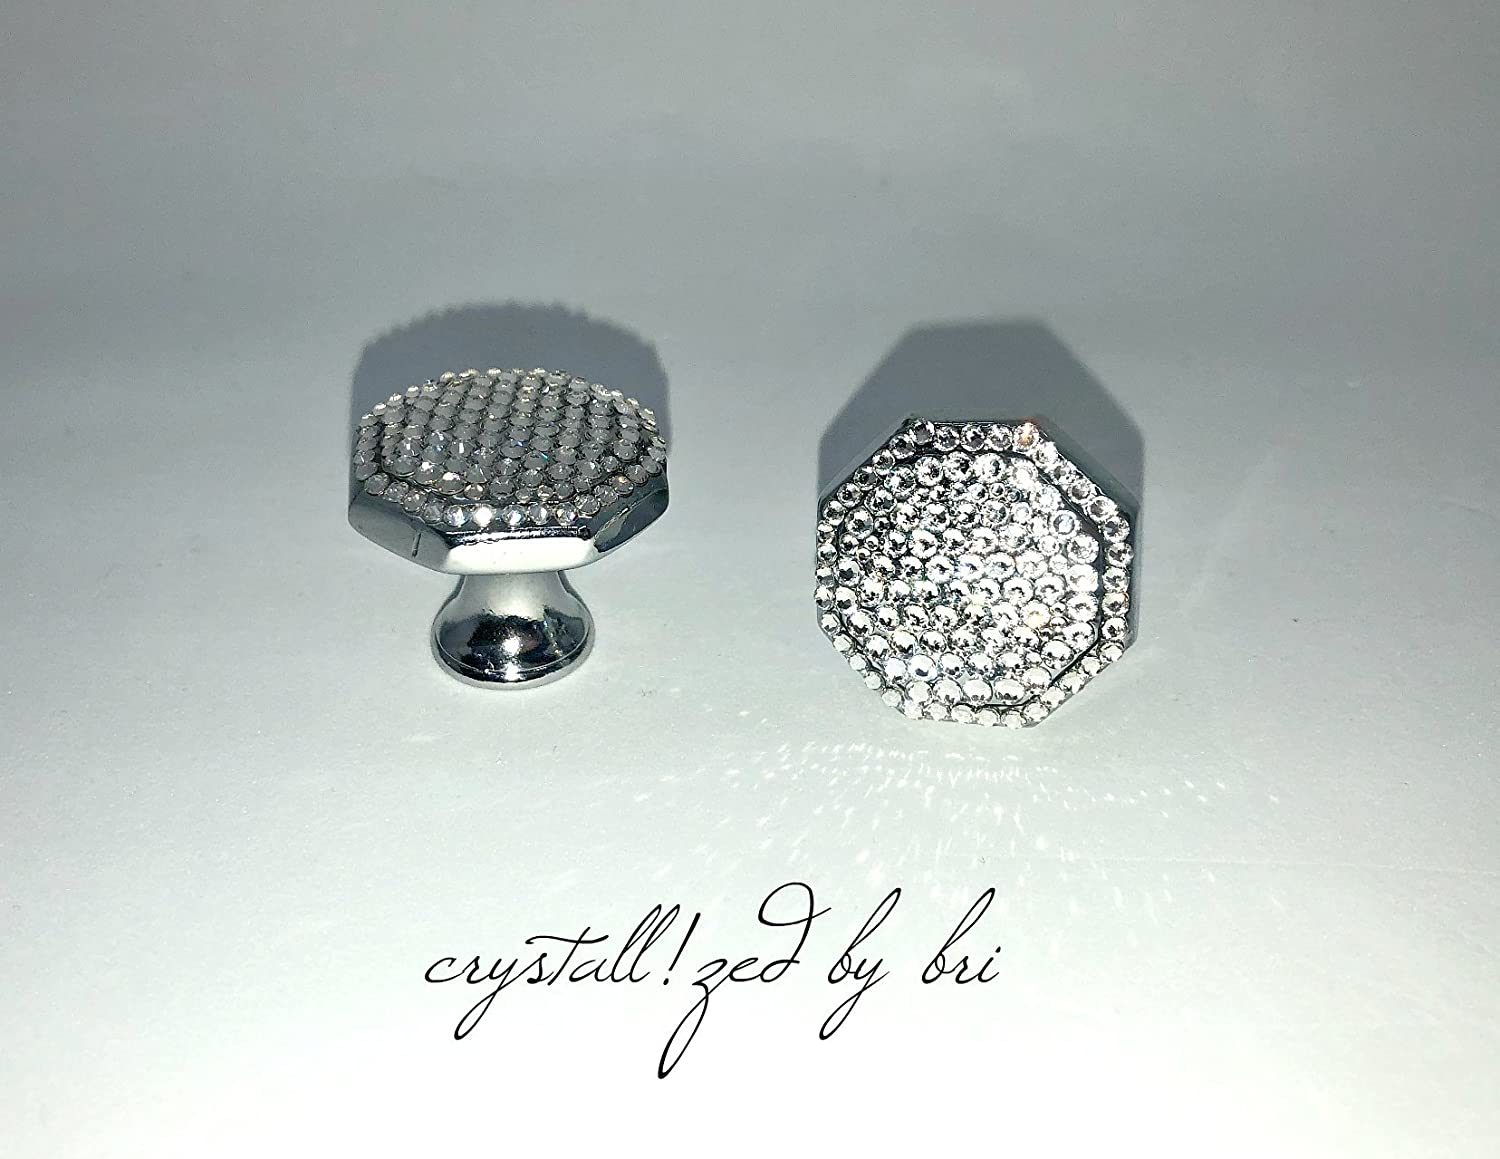 Pair Swarovski CRYSTALLIZED Octagon Cabinet Knobs Polished Chrome Bling Crystals